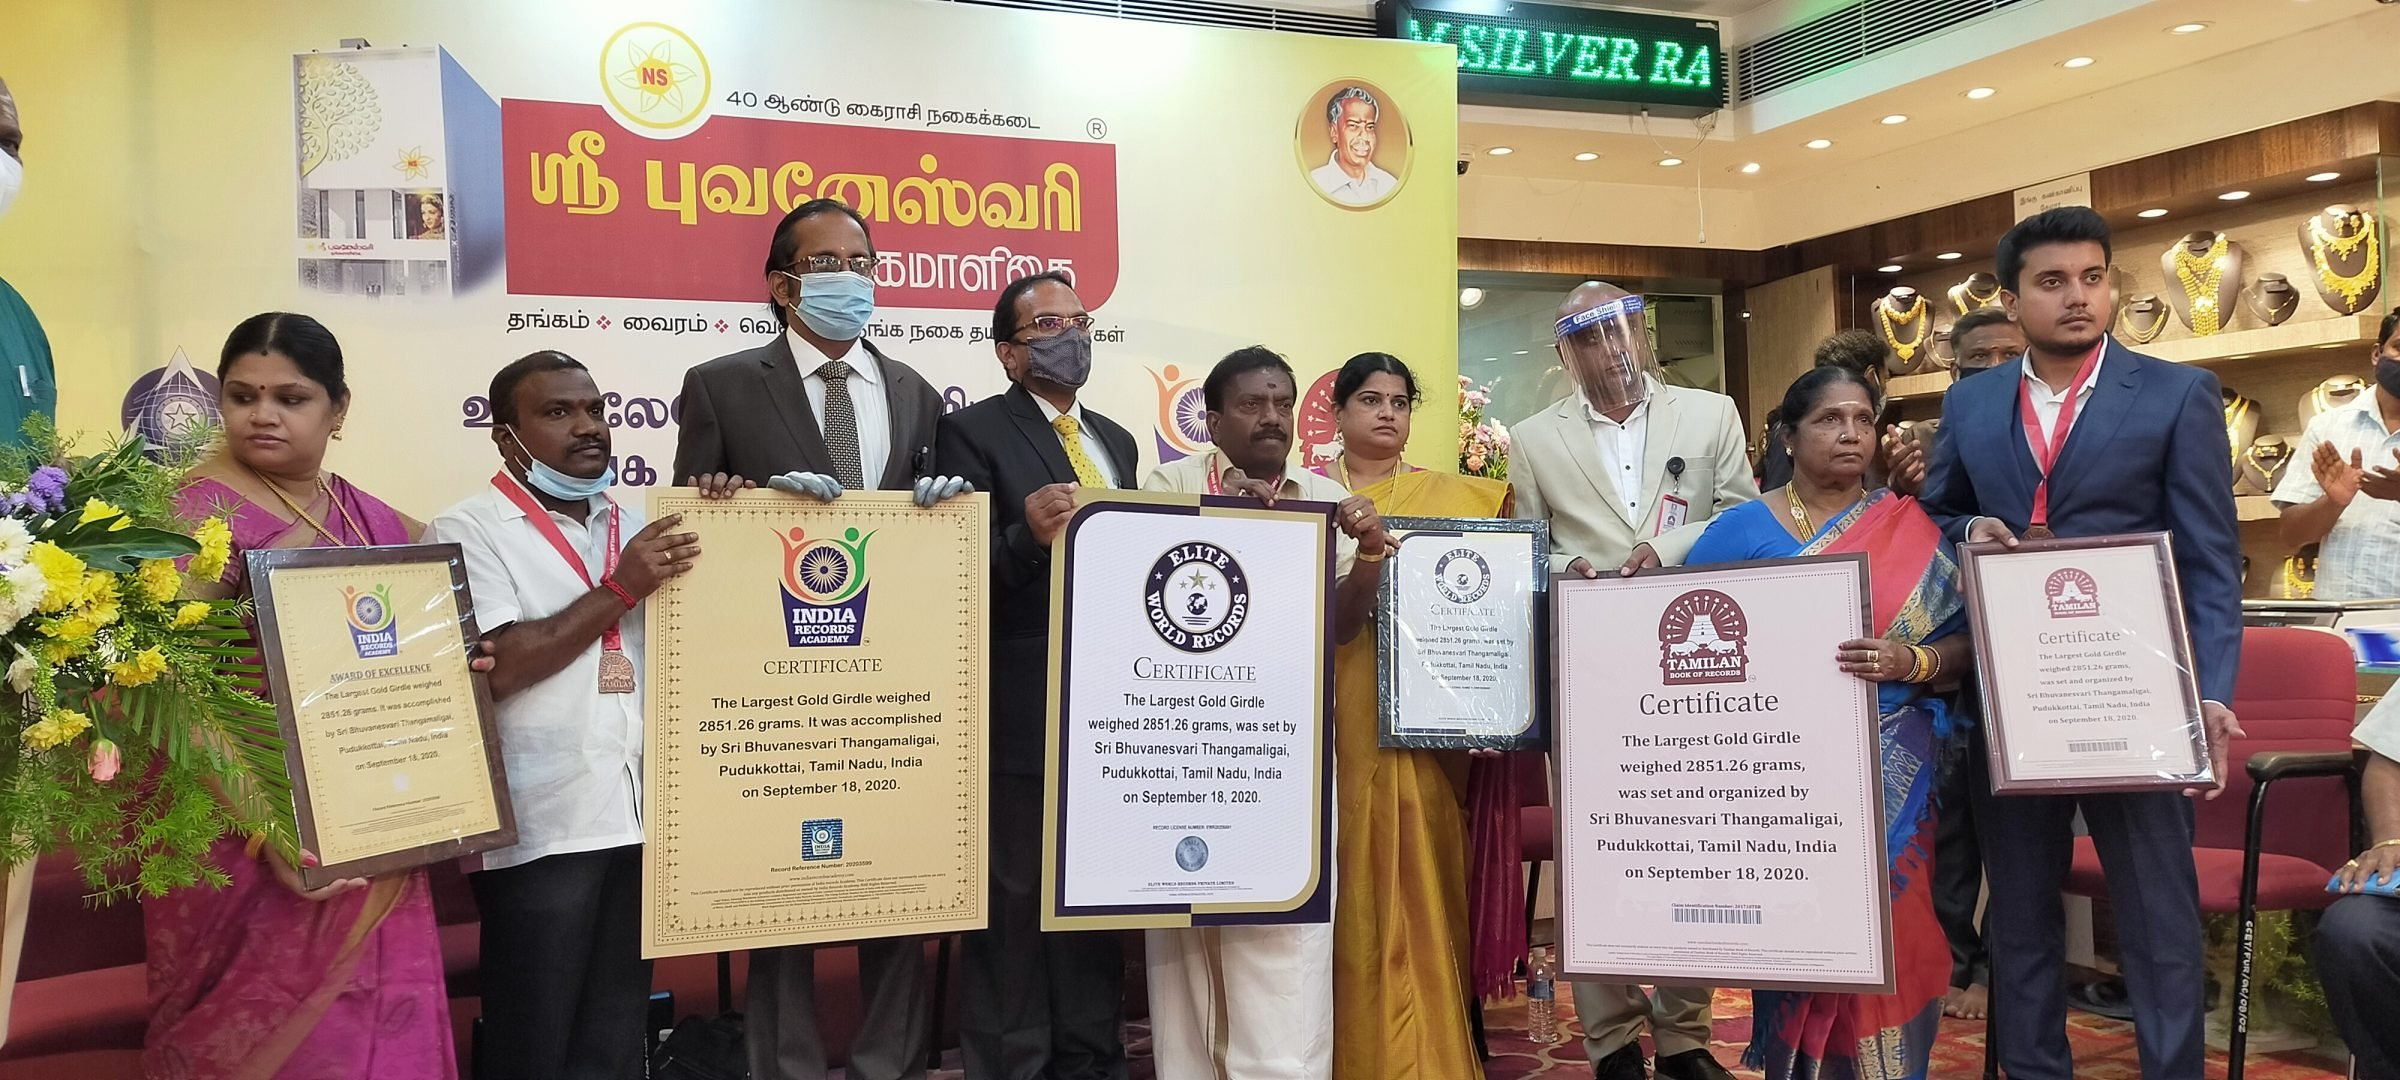 Sri Bhuvanesvari Thangamaligai in Tamil Nadu Creates a New World Record by making the World's Largest Gold Girdle - Digpu News